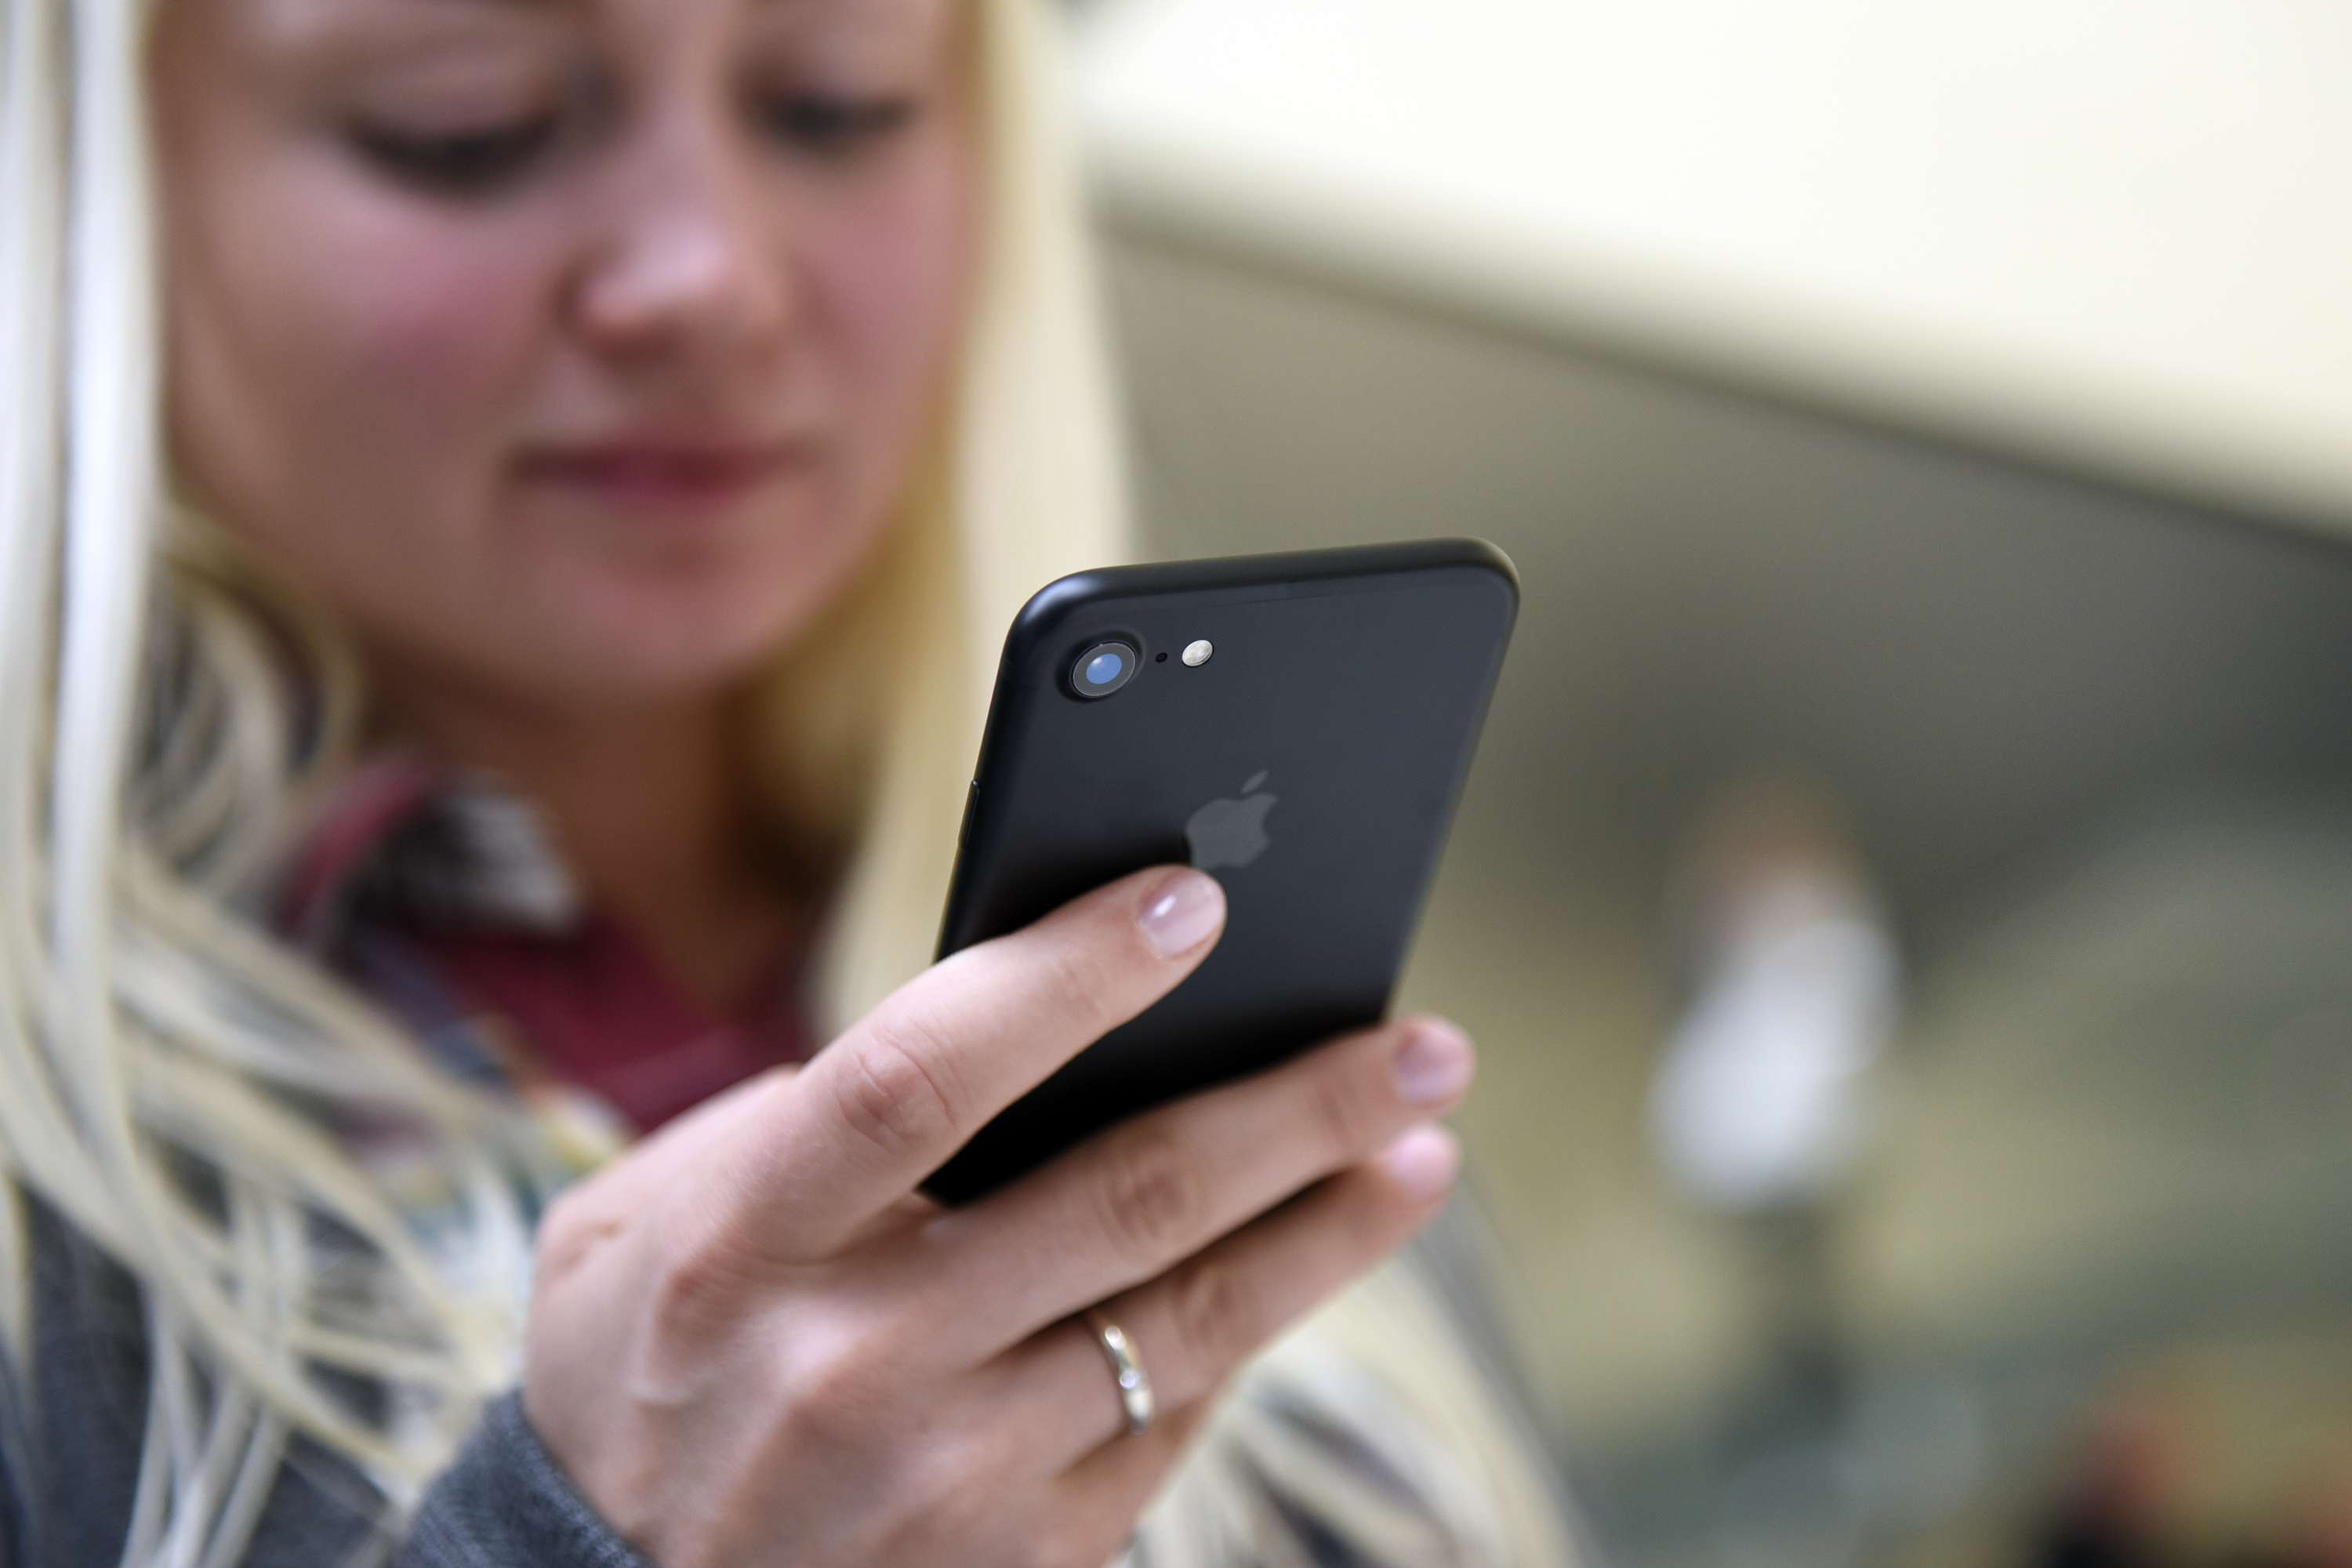 A customer views an iPhone 7 smartphone at an Apple Inc. in San Francisco, California, U.S., on Friday, Sept. 16, 2016.